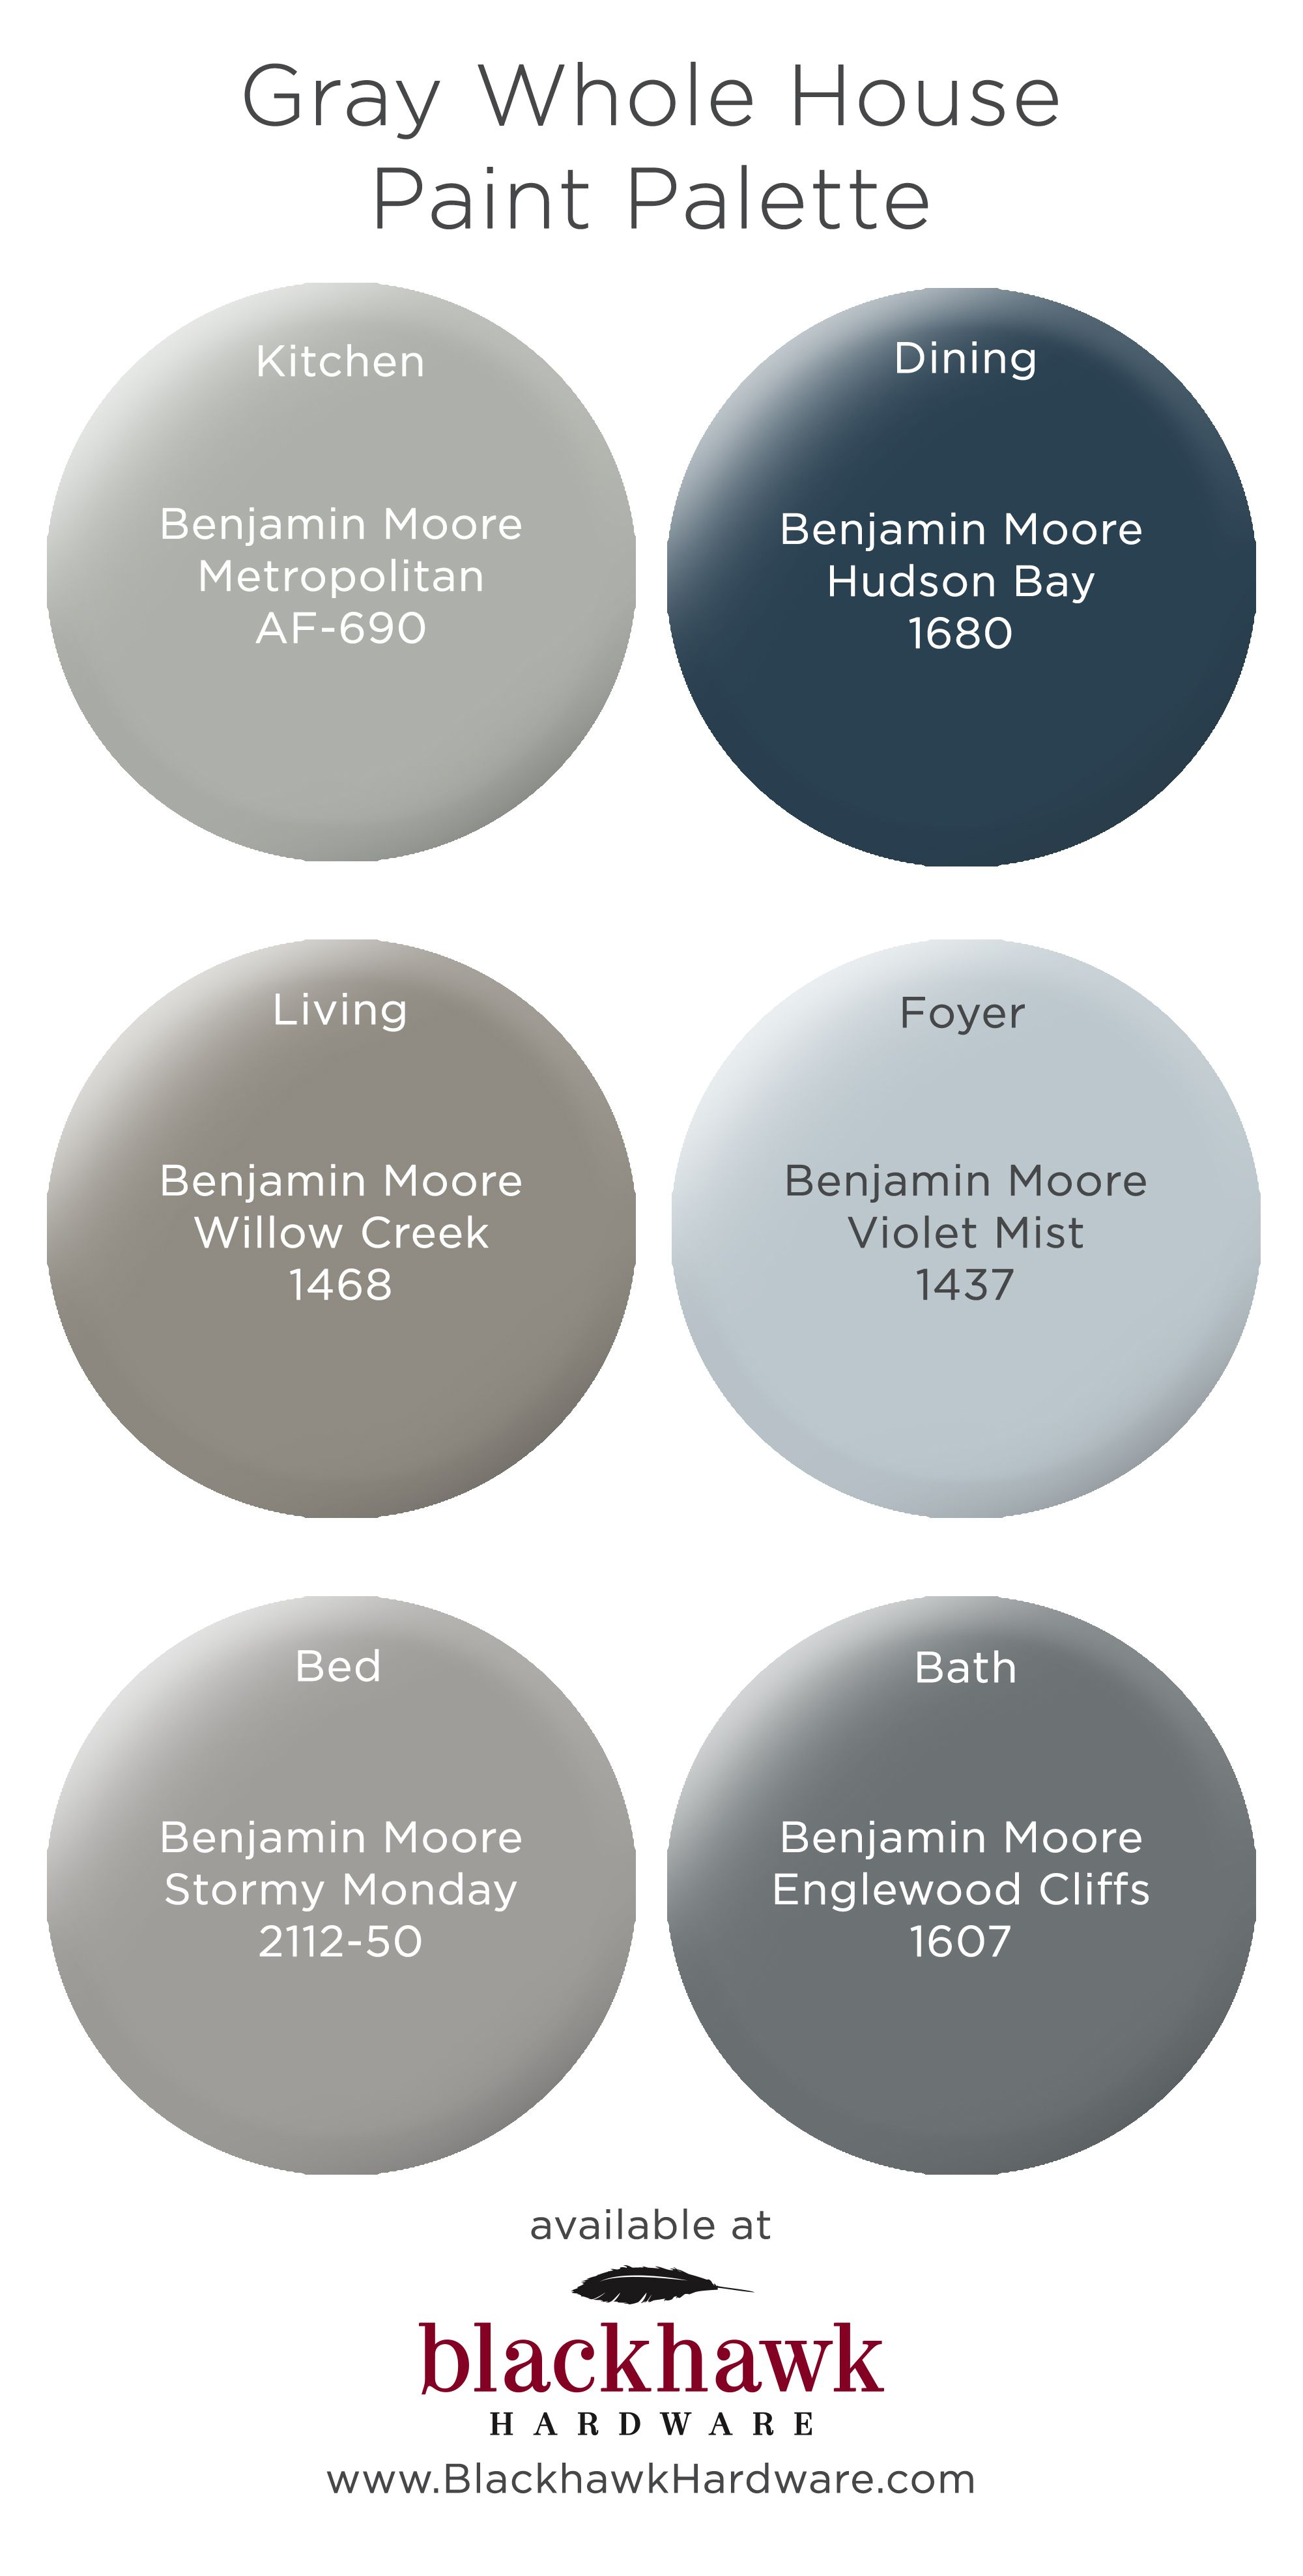 whole house paint palettes by benjamin moore in 2019 painting rh pinterest com